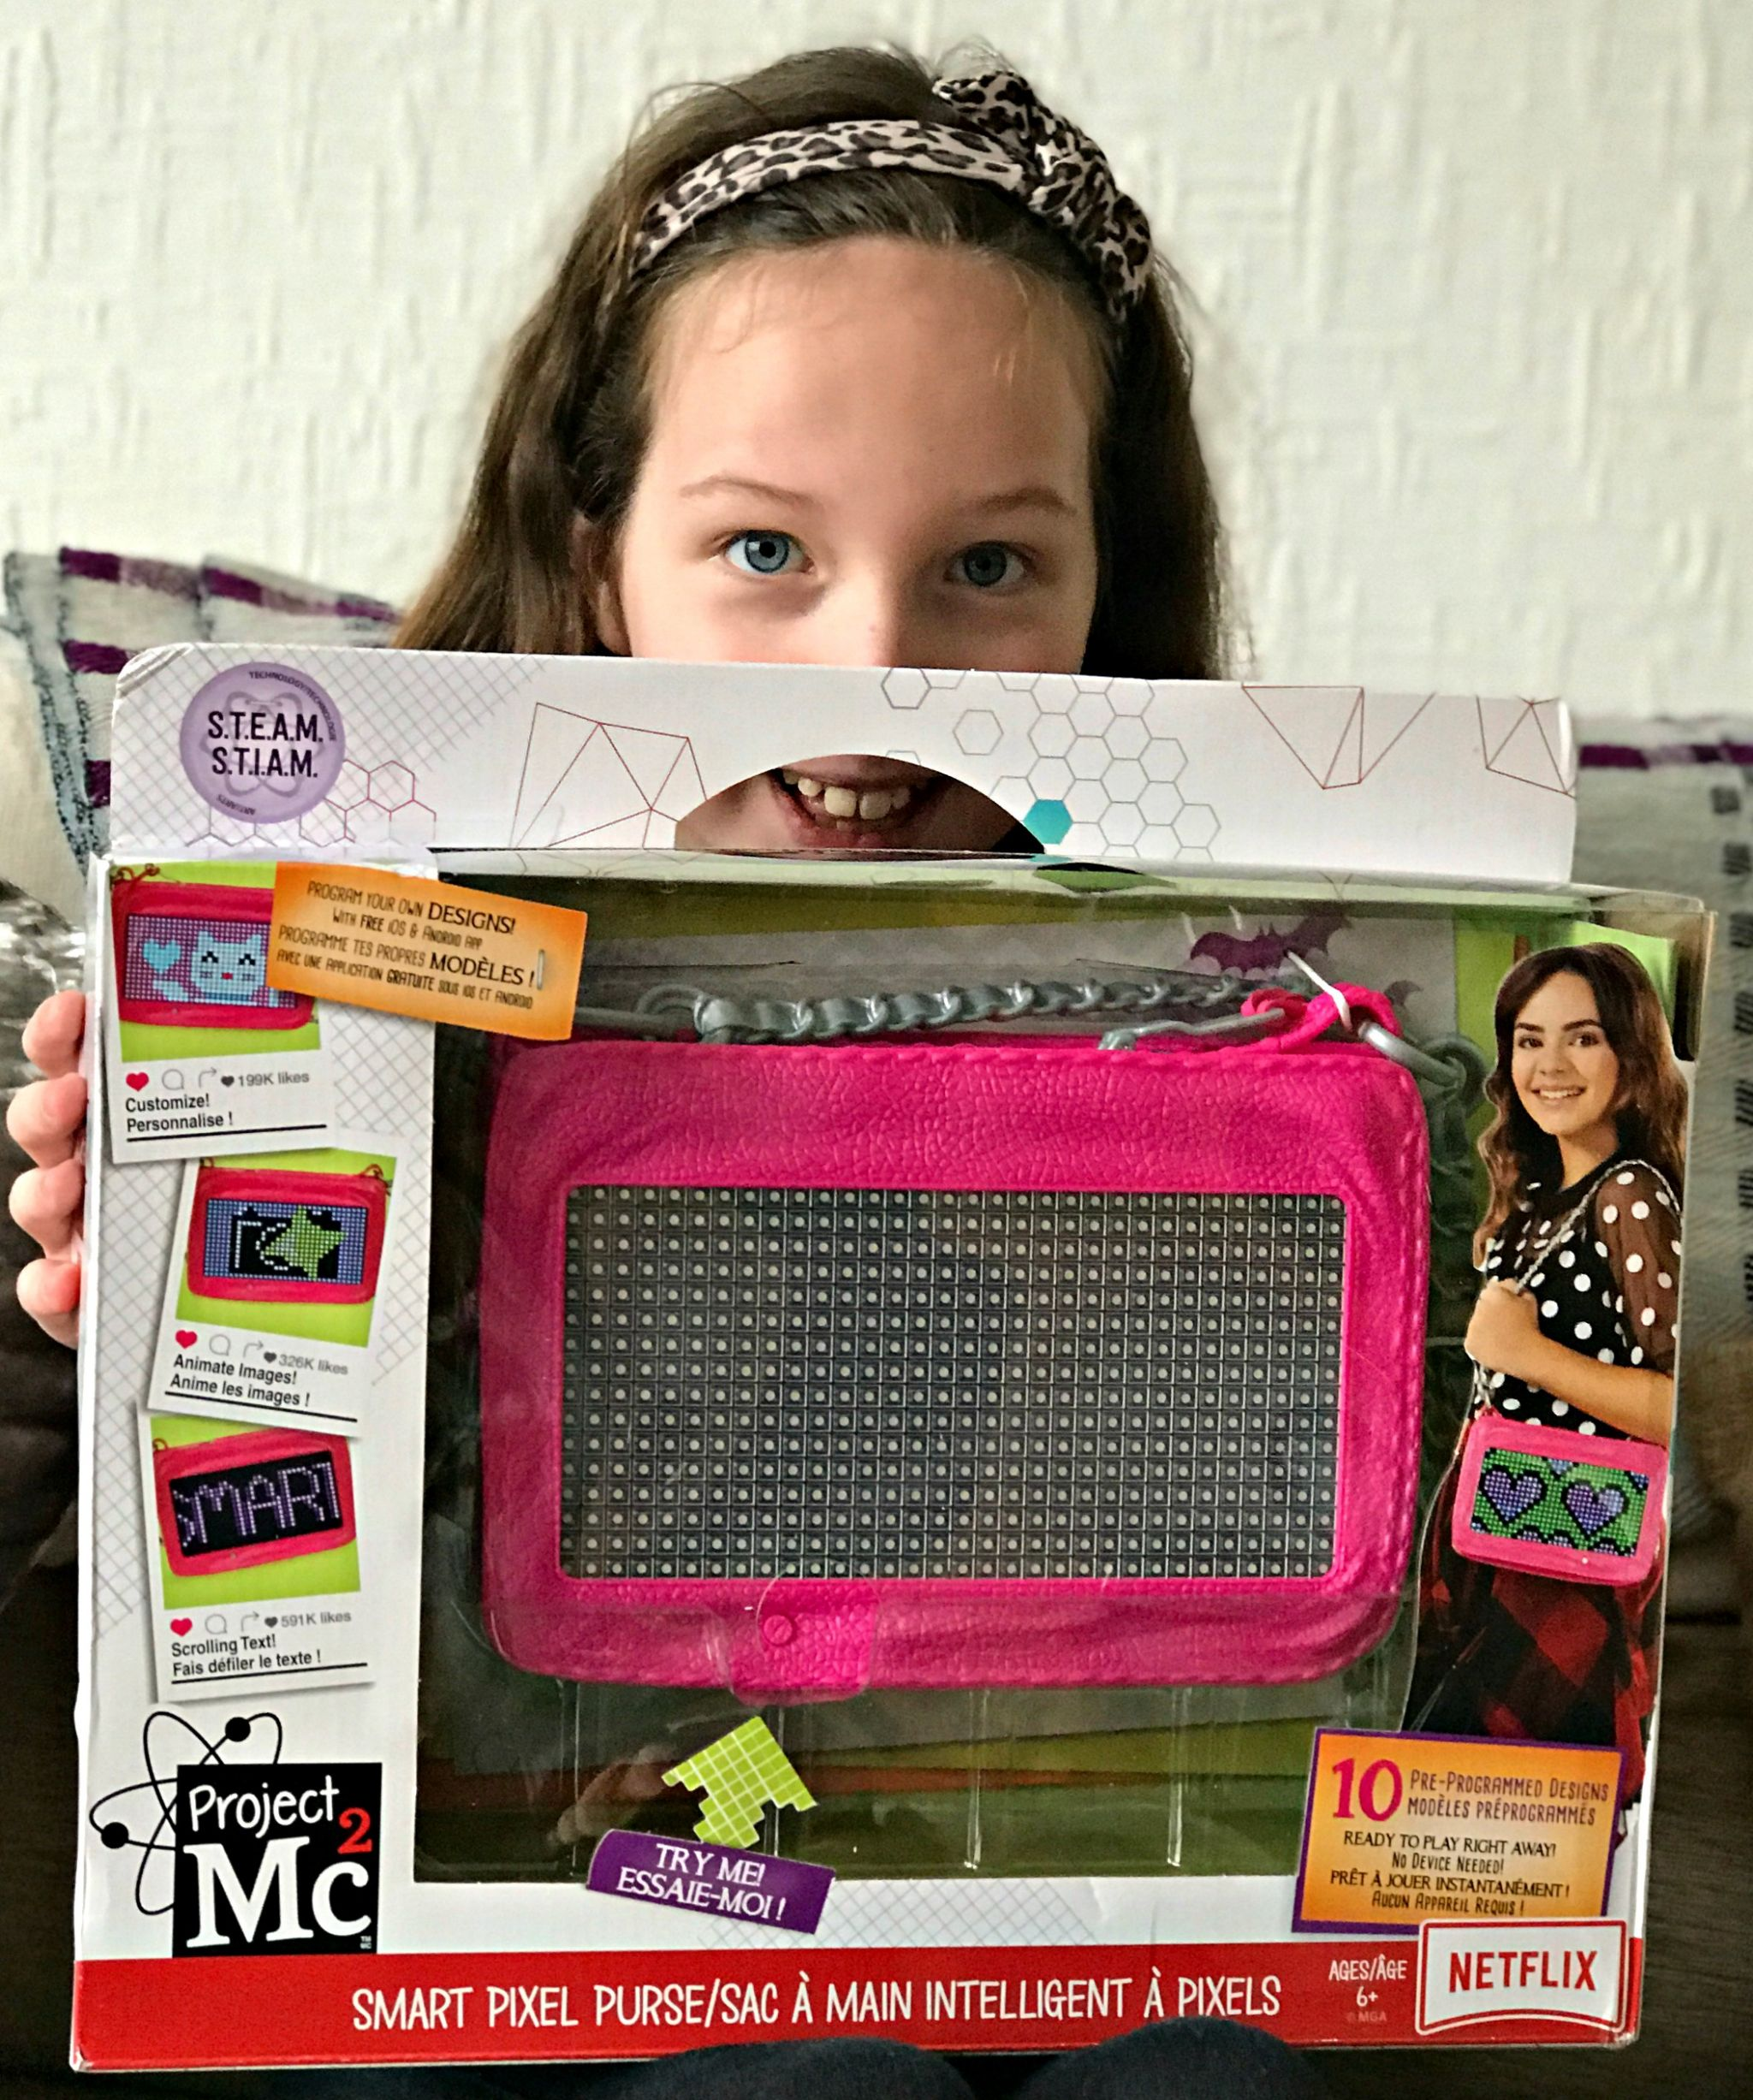 Project Mc2 Pixel Purse - Caitlin holding the box and smiling